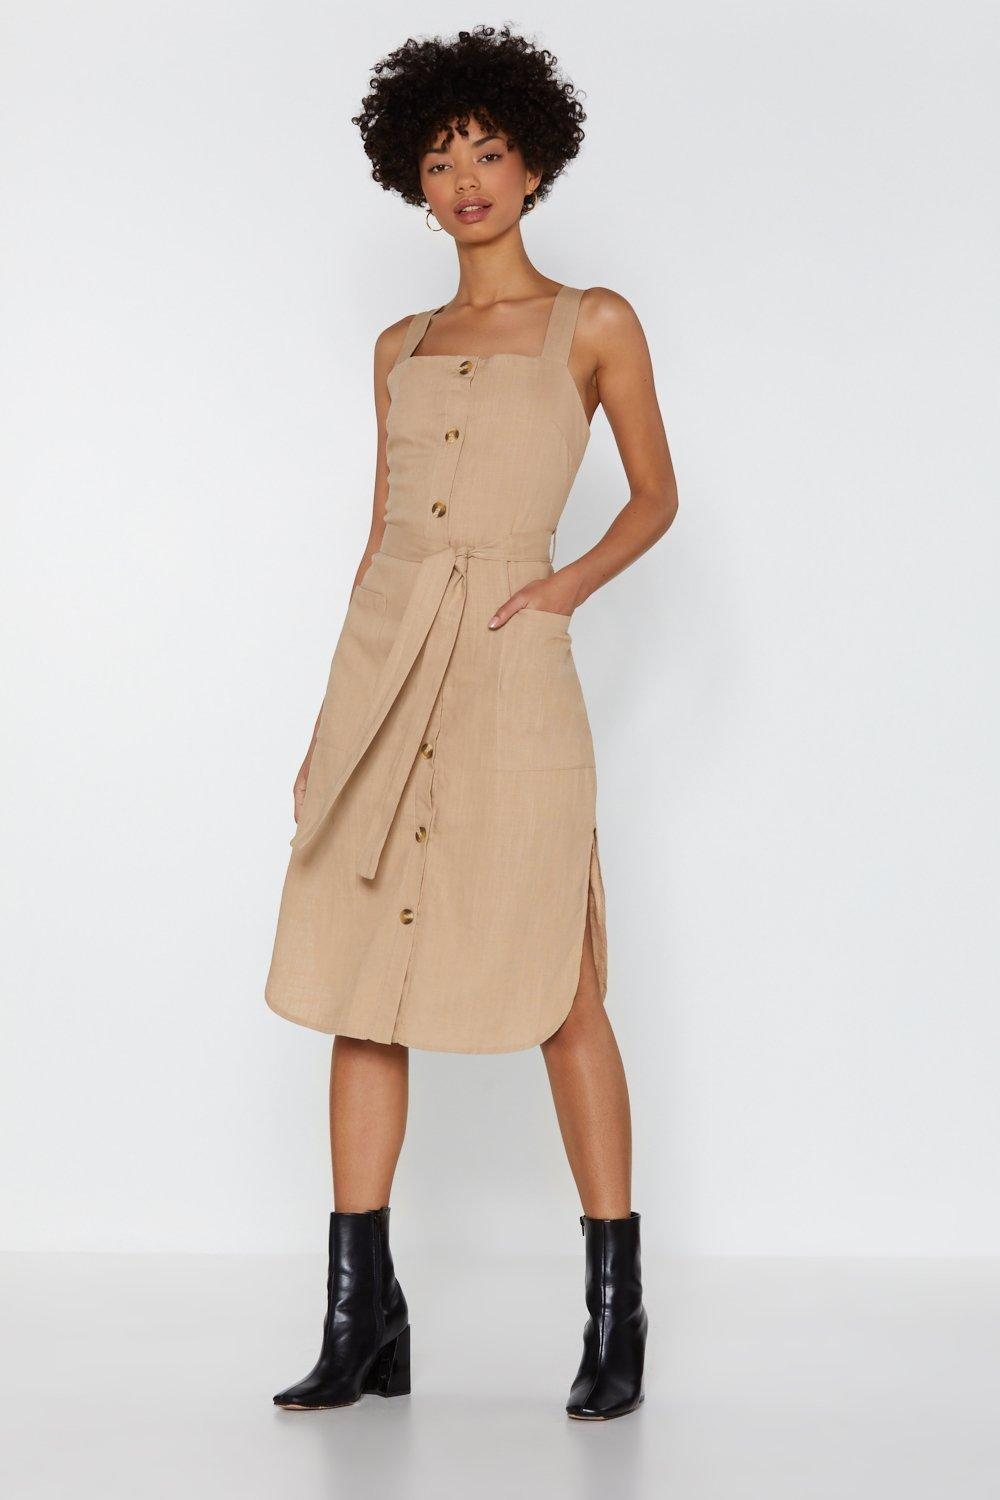 96db81286766 Lose Control Button-Down Dress | Shop Clothes at Nasty Gal!